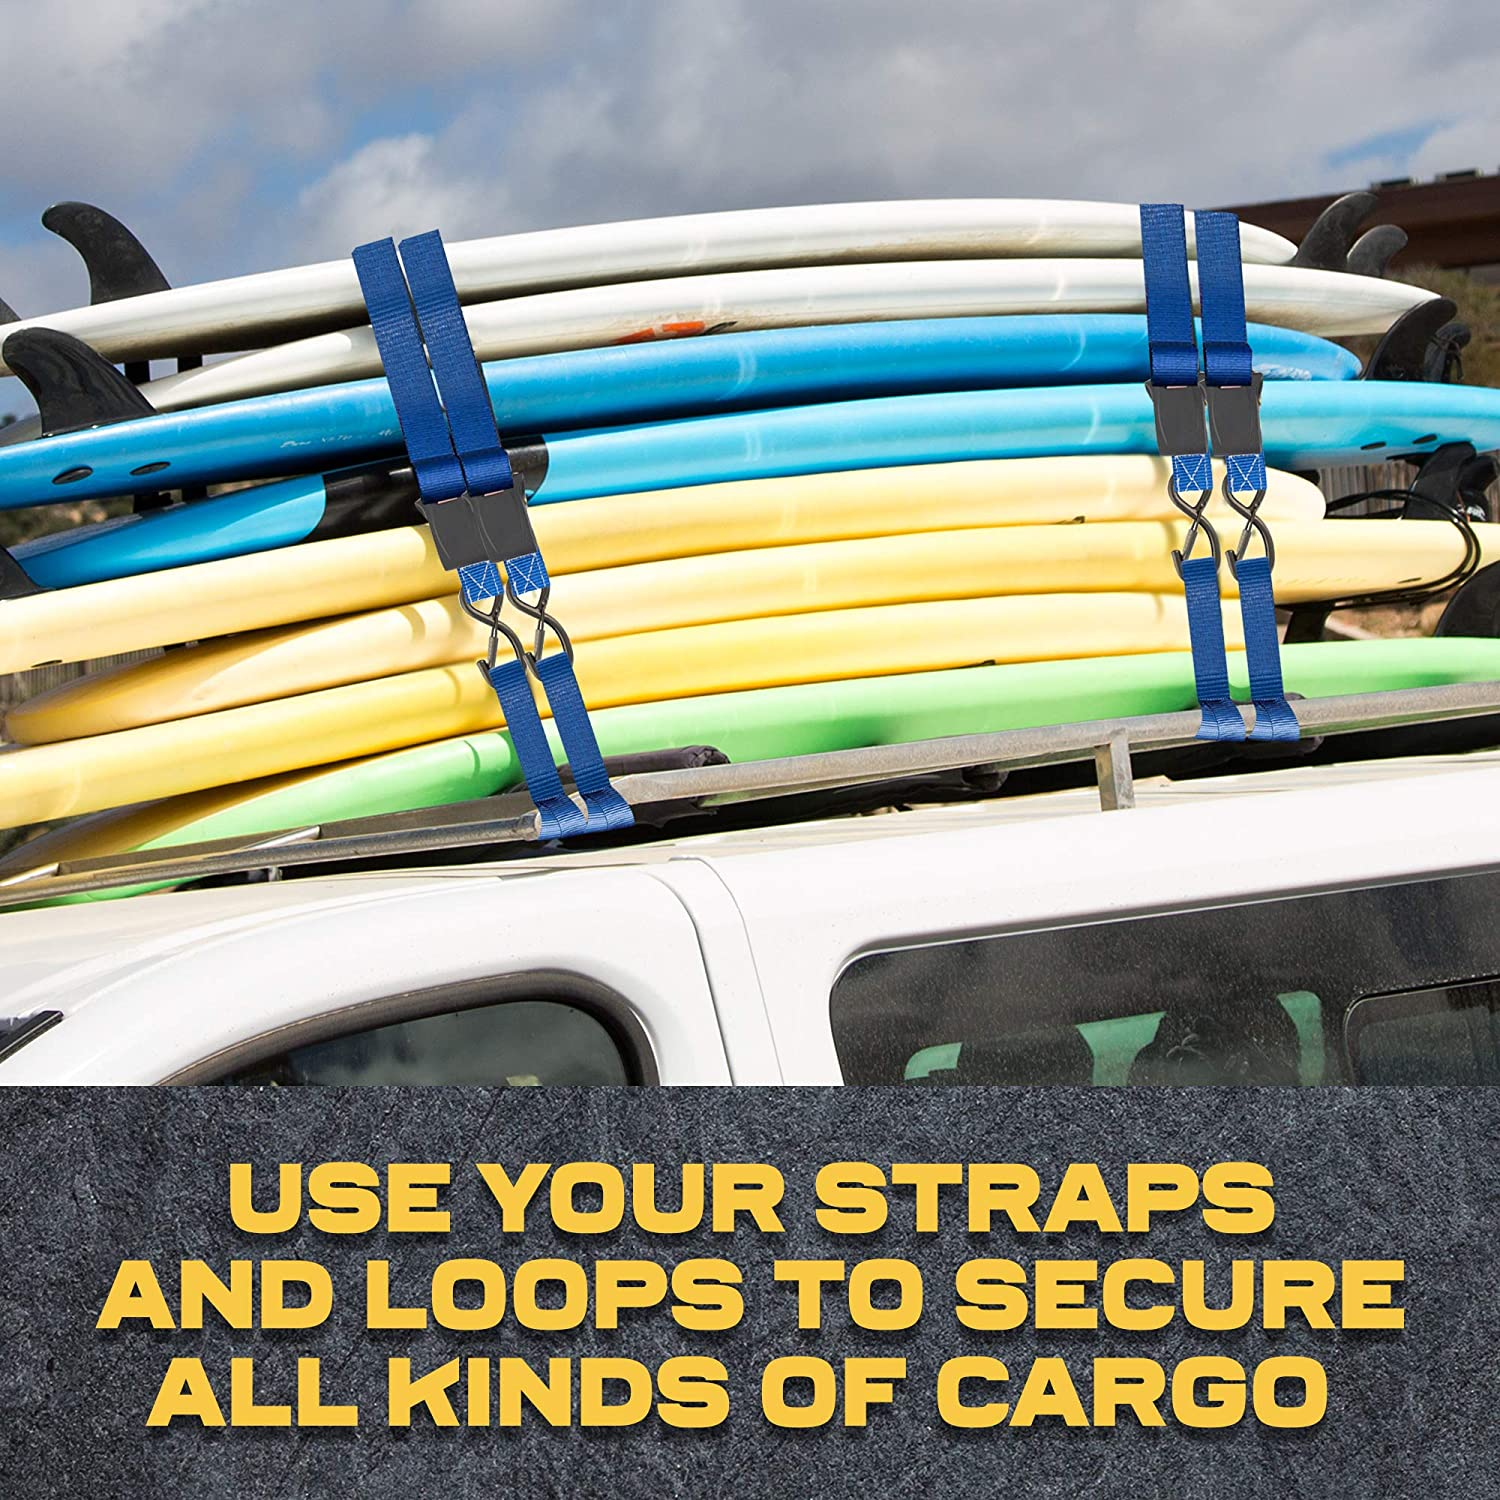 """1700Lb Break Strength for Furniture Pack of AUGO Extra Strong Ratchet Straps /& Soft Loops TVs Surfboards 4 1/"""" by 15/' Ratchet Straps w//S-Hook Safety Latches /& Soft Loop Tie Downs 4 Etc."""